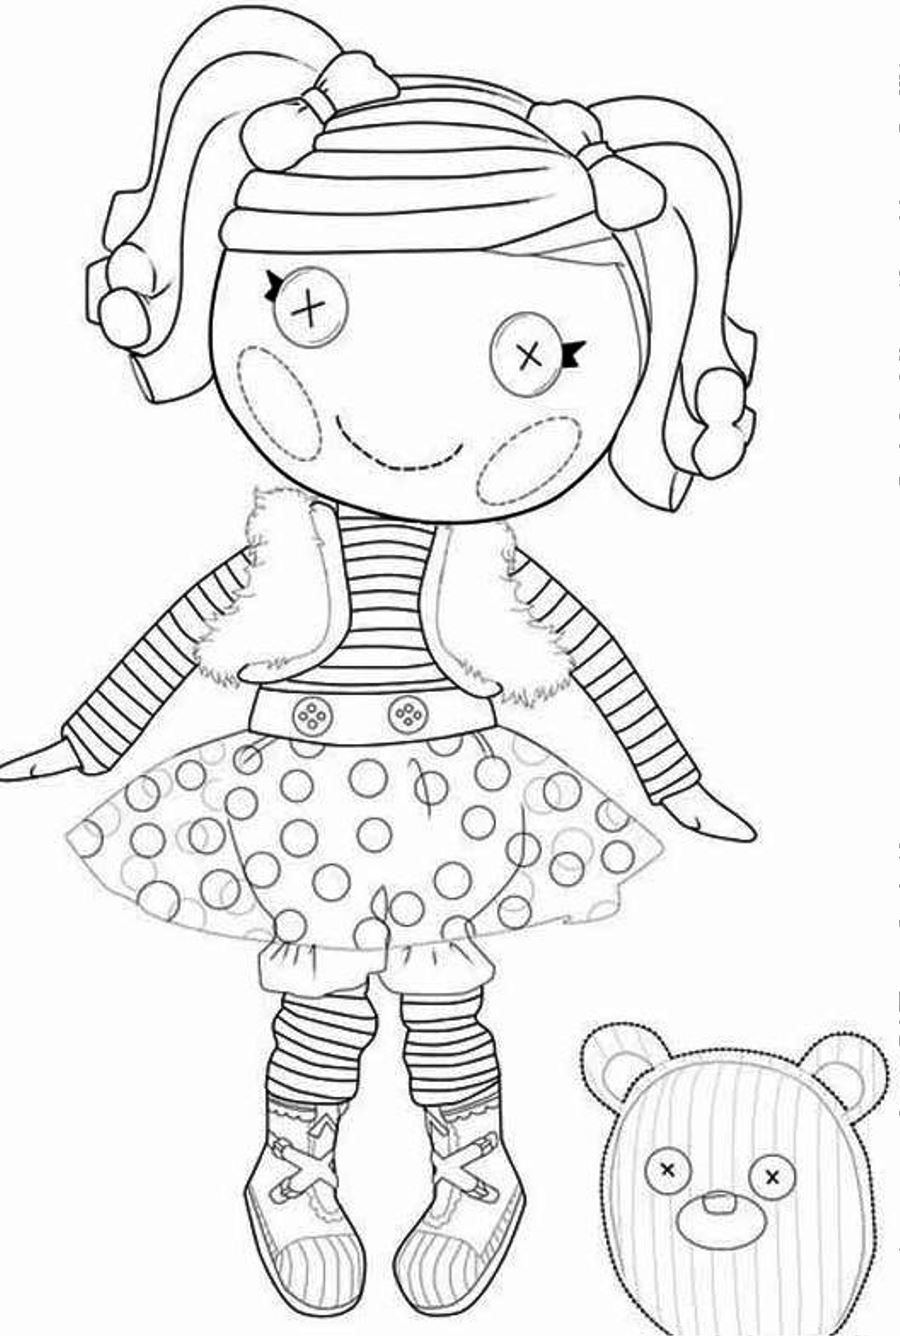 Print or Download Lalaloopsy Free Printable Coloring Pages ...